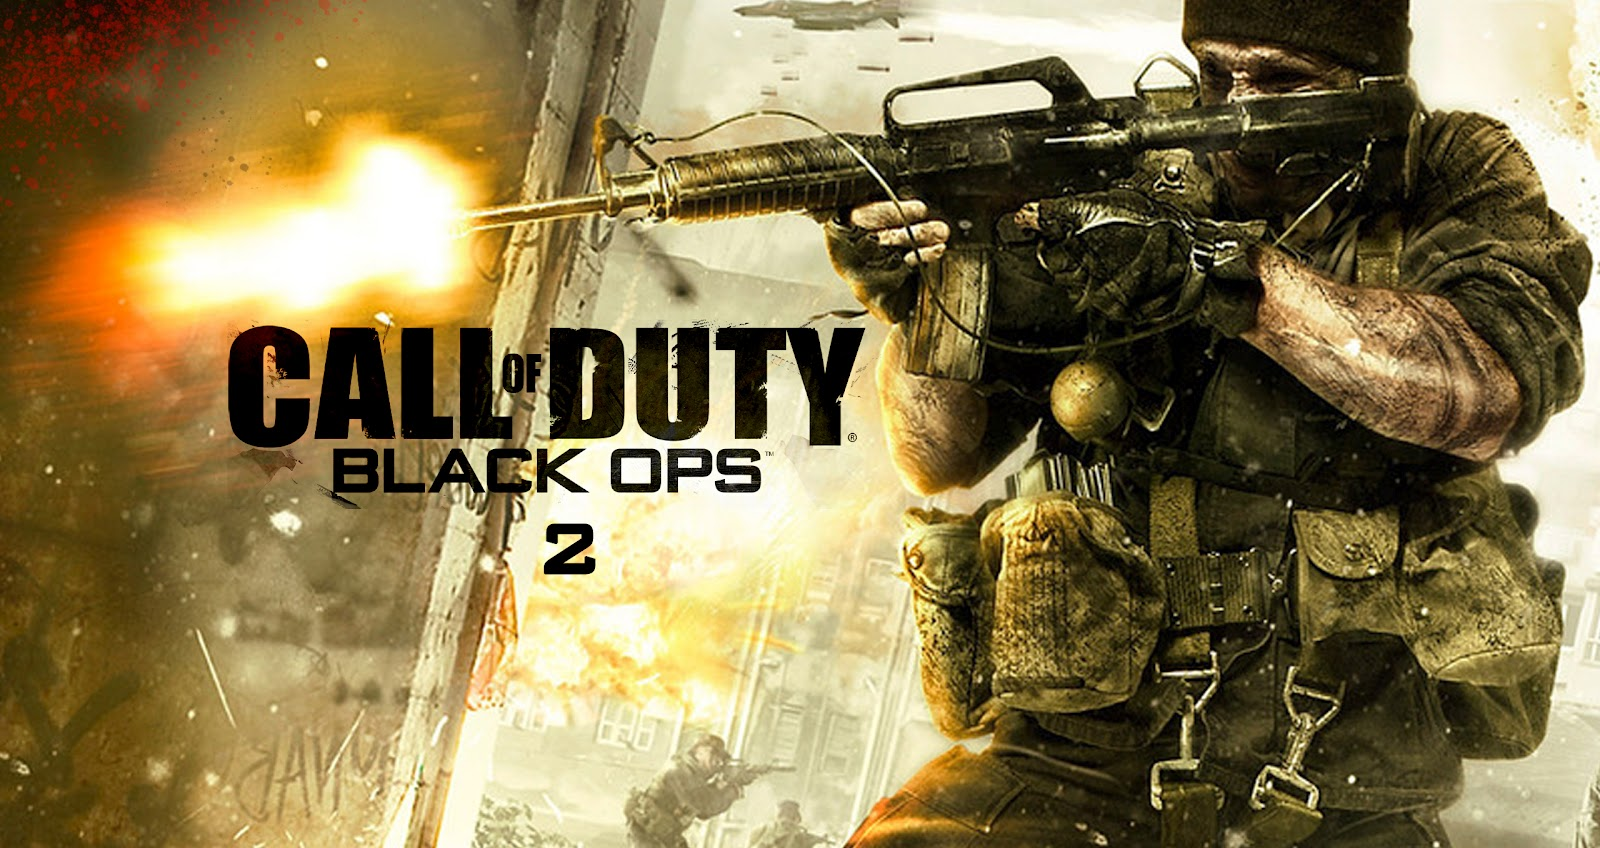 http://3.bp.blogspot.com/-uxTEZufDq9w/UD-AytIwGII/AAAAAAAAAWs/KdE0jjEc5Ck/s1600/call-of-duty-black-ops-2-wallpaper-1.jpg